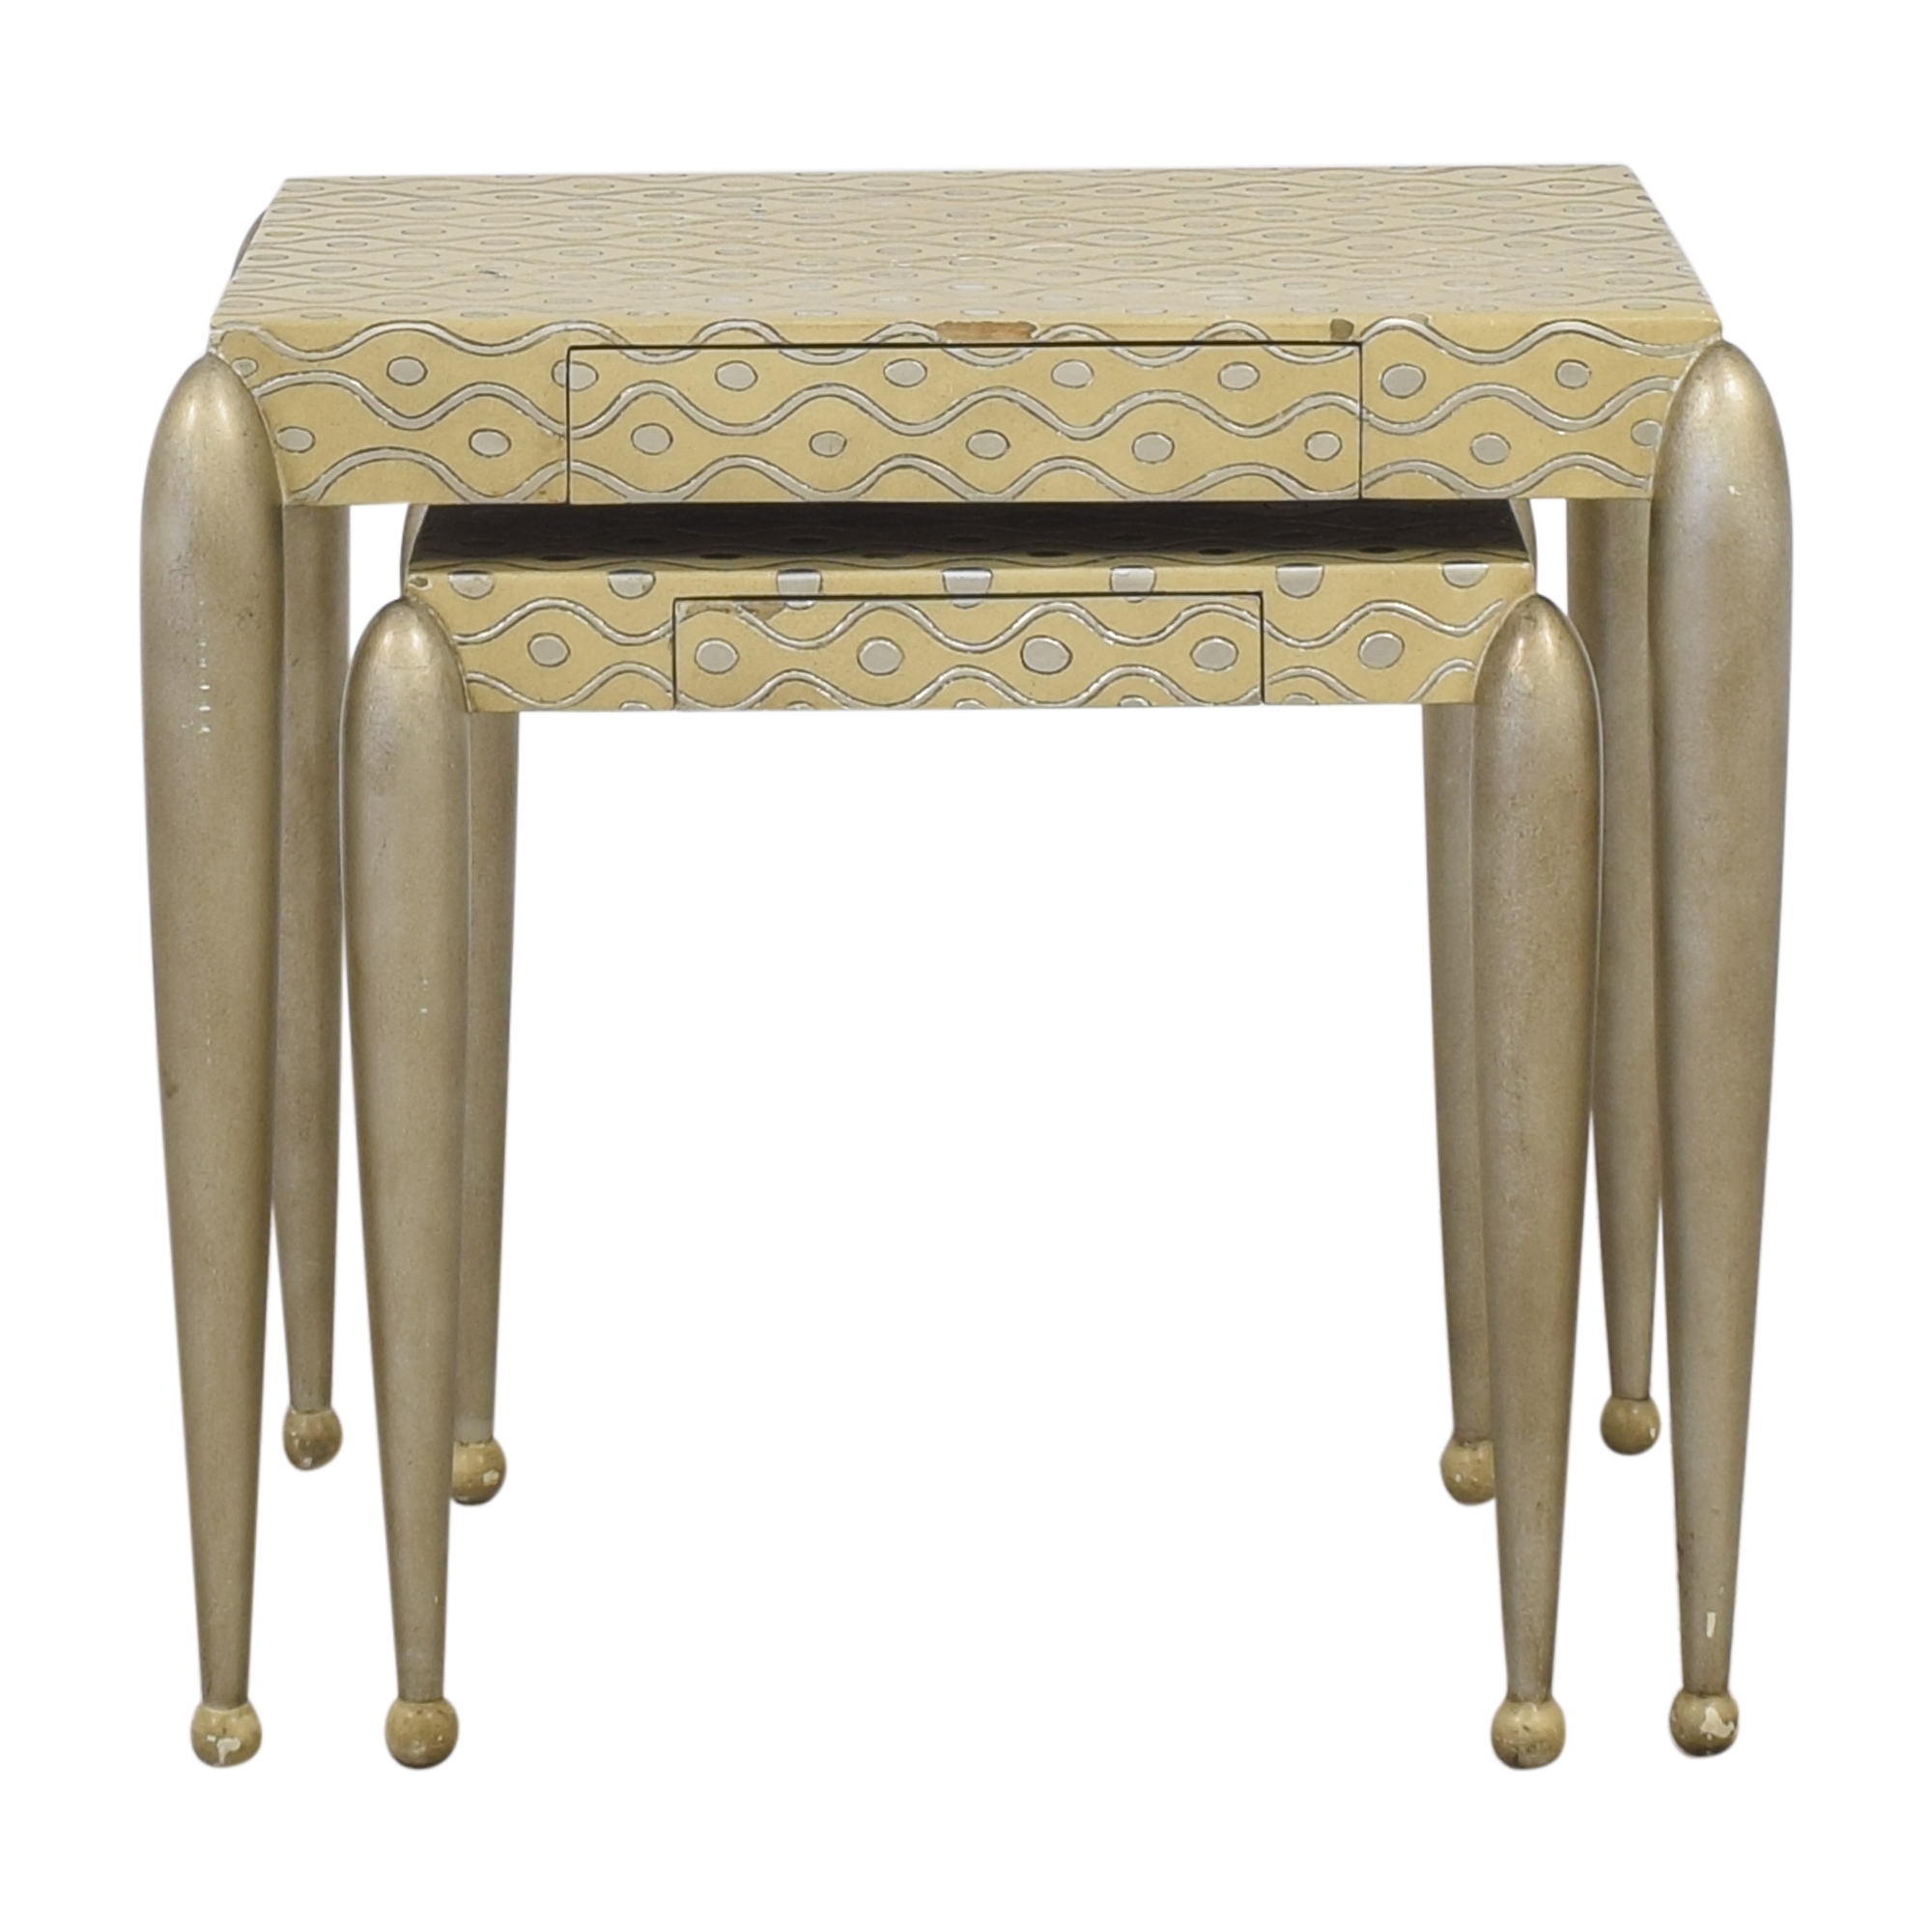 ABC Carpet & Home African Inspired Nesting Tables with Drawers discount